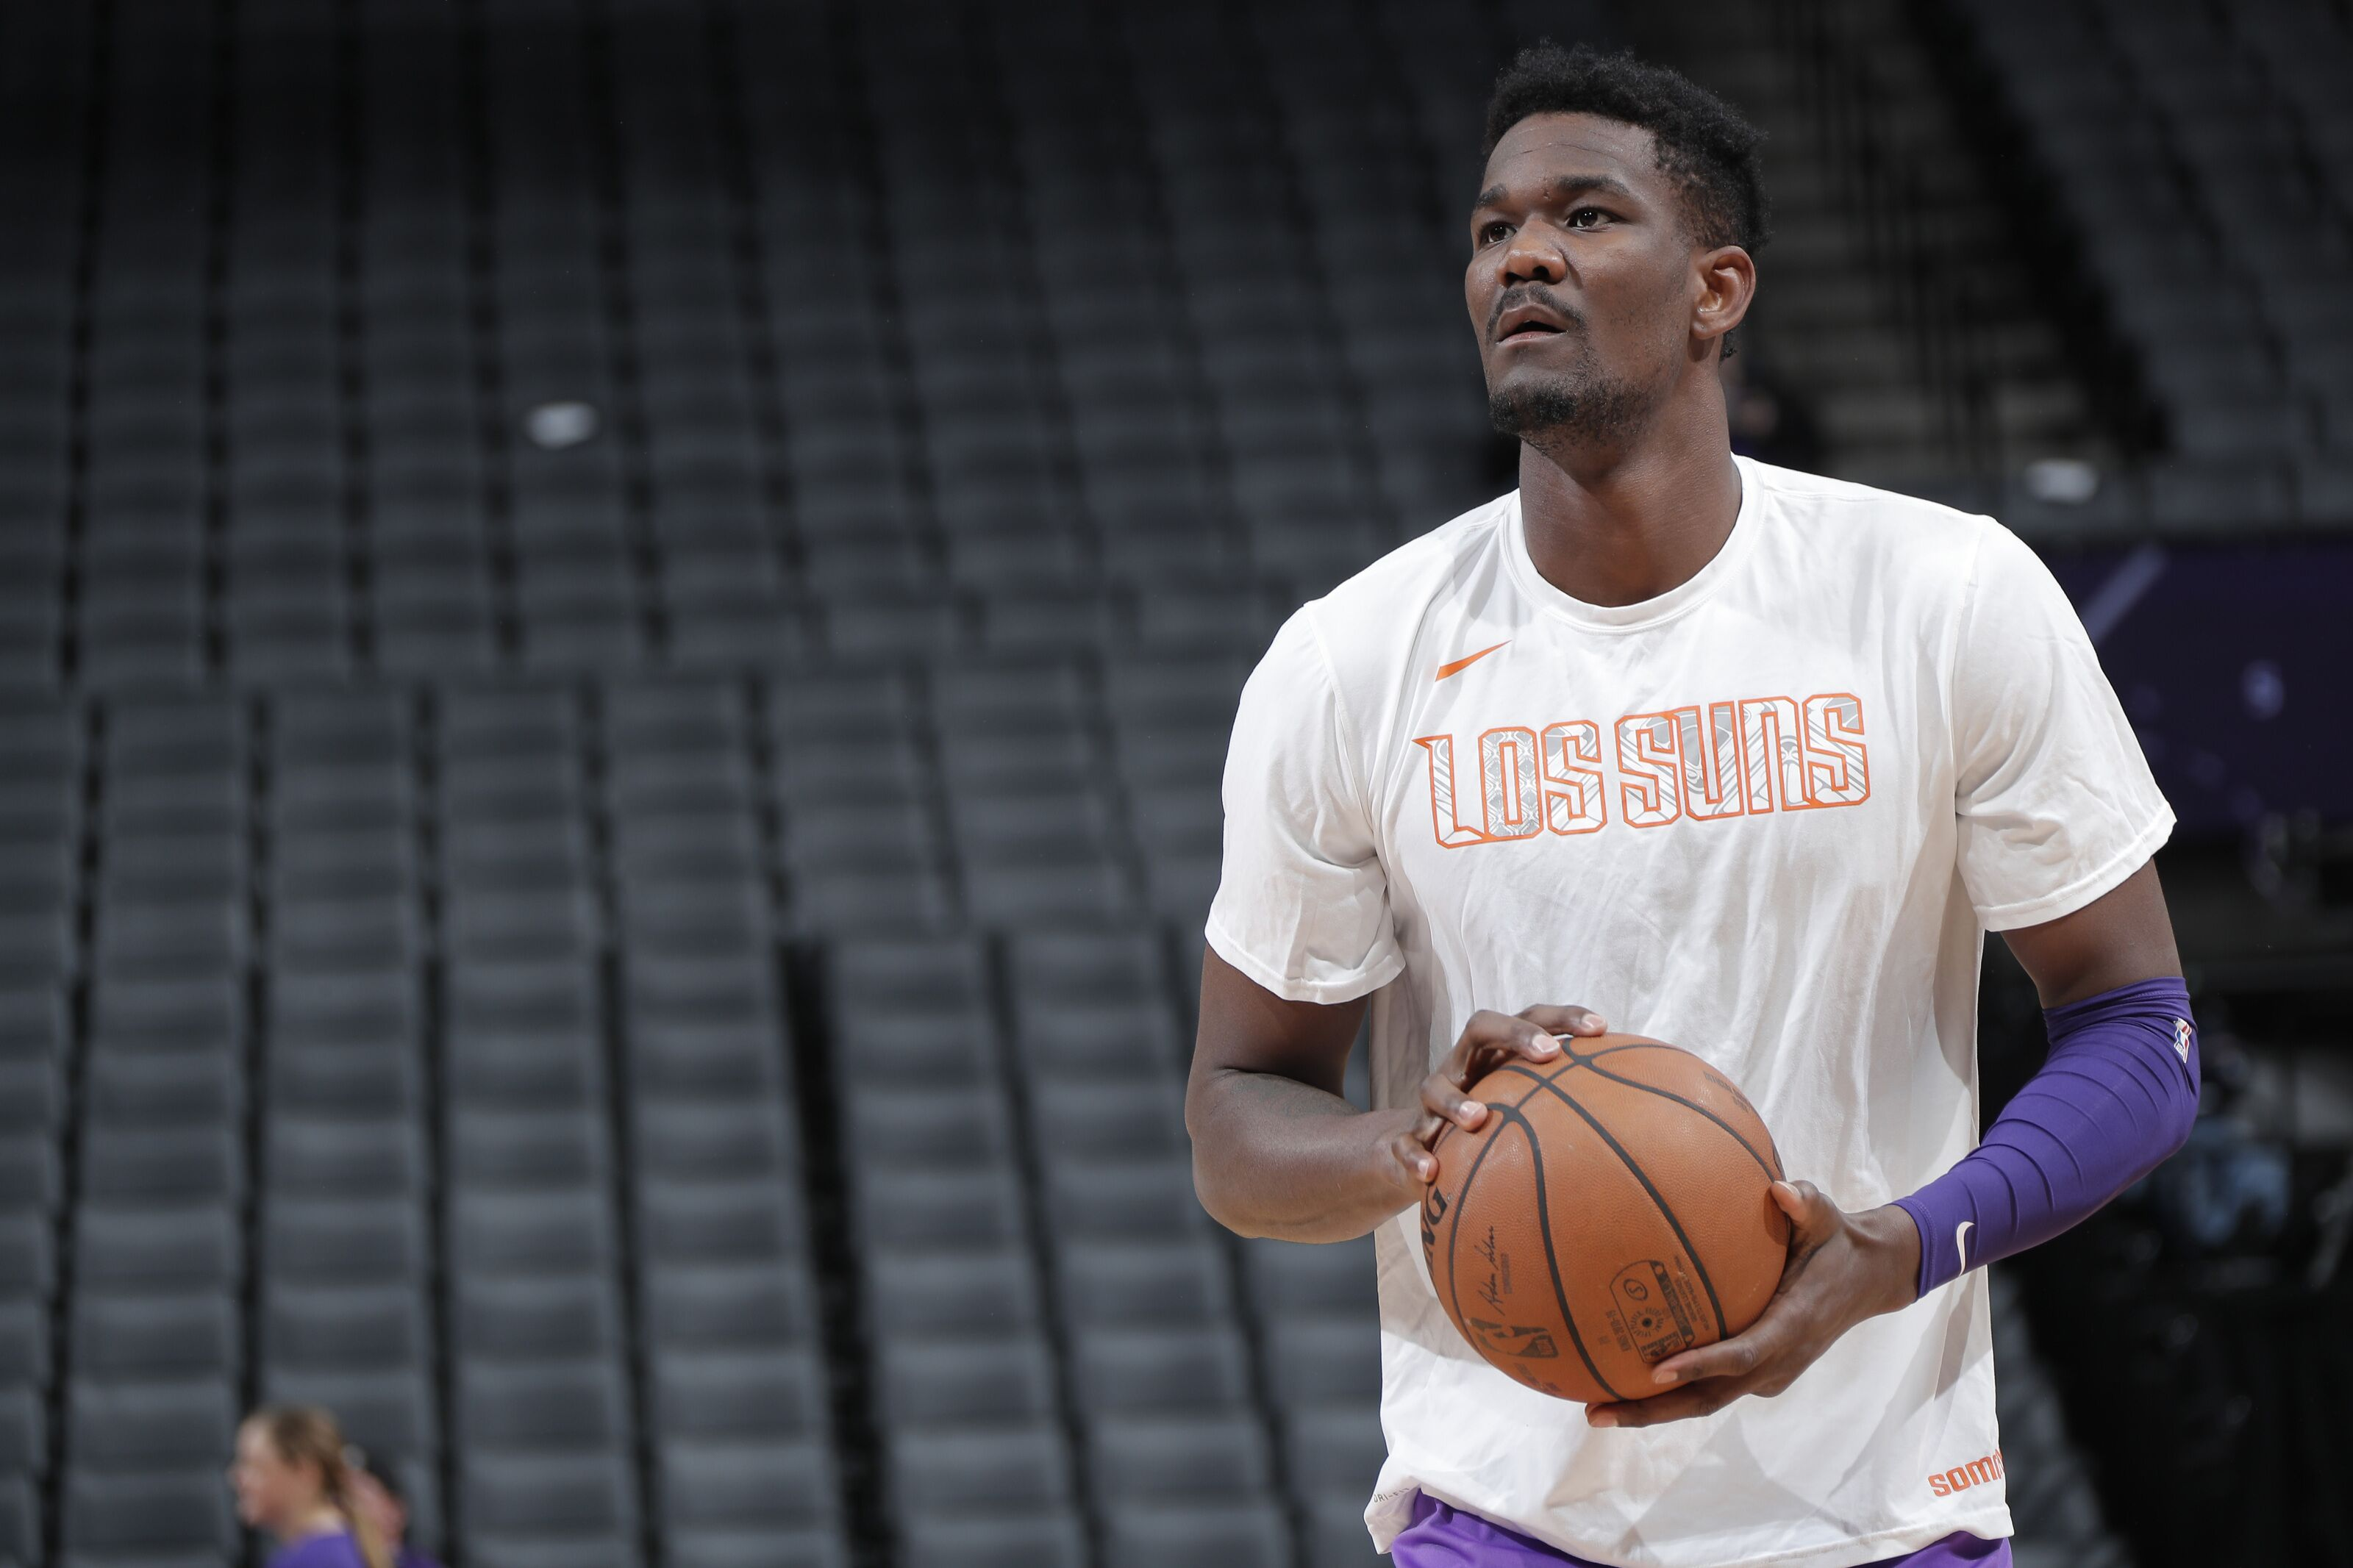 The Phoenix Suns should not play Deandre Ayton at Power Forward